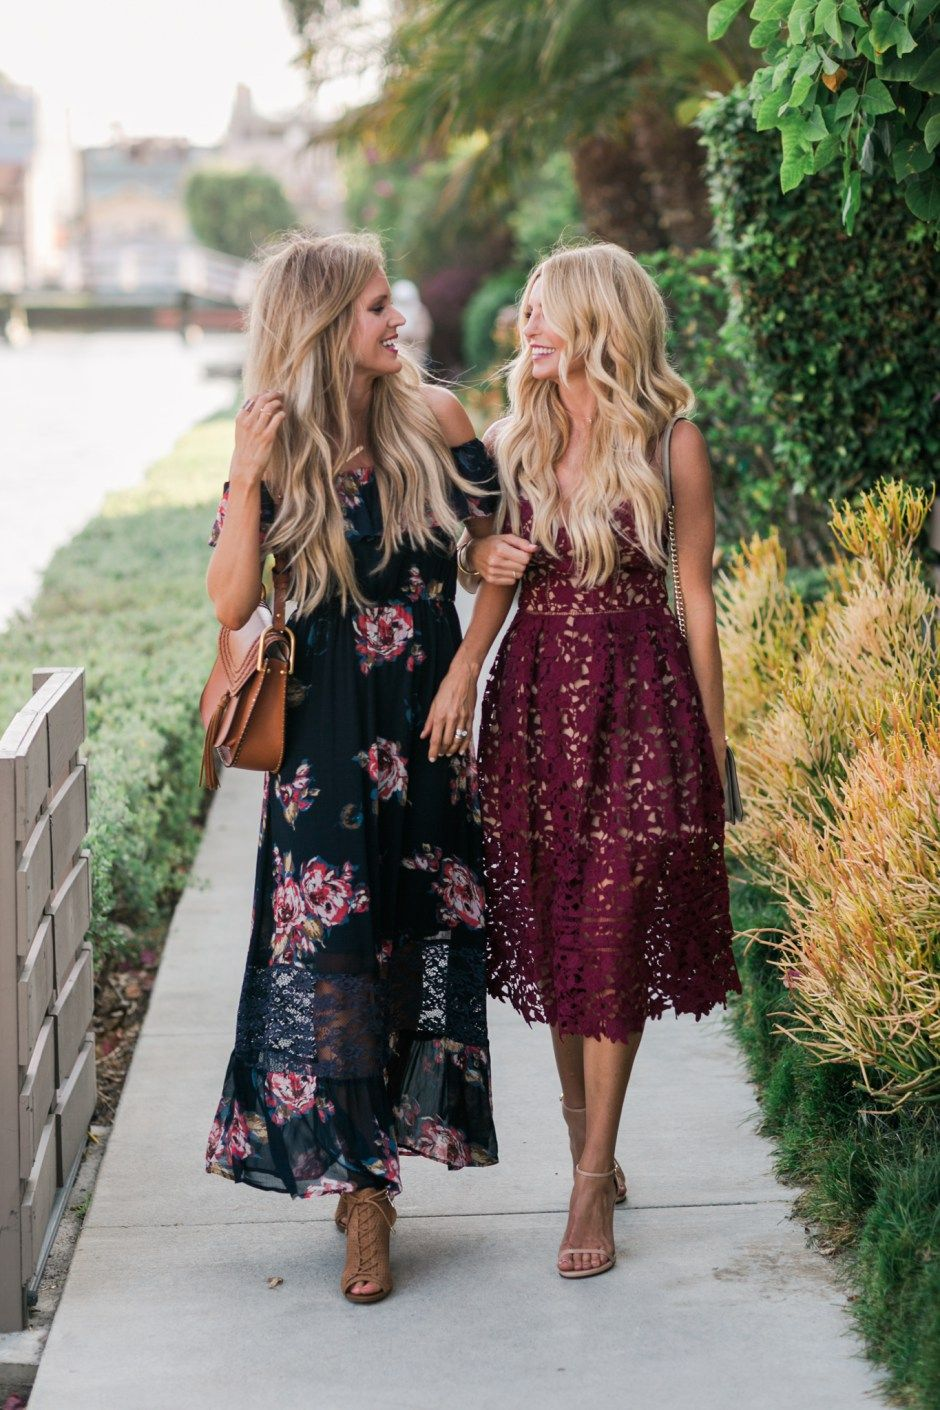 Dresses to wear to a fall wedding for a guest  early fall occasions call for light airy dresses in rich fall